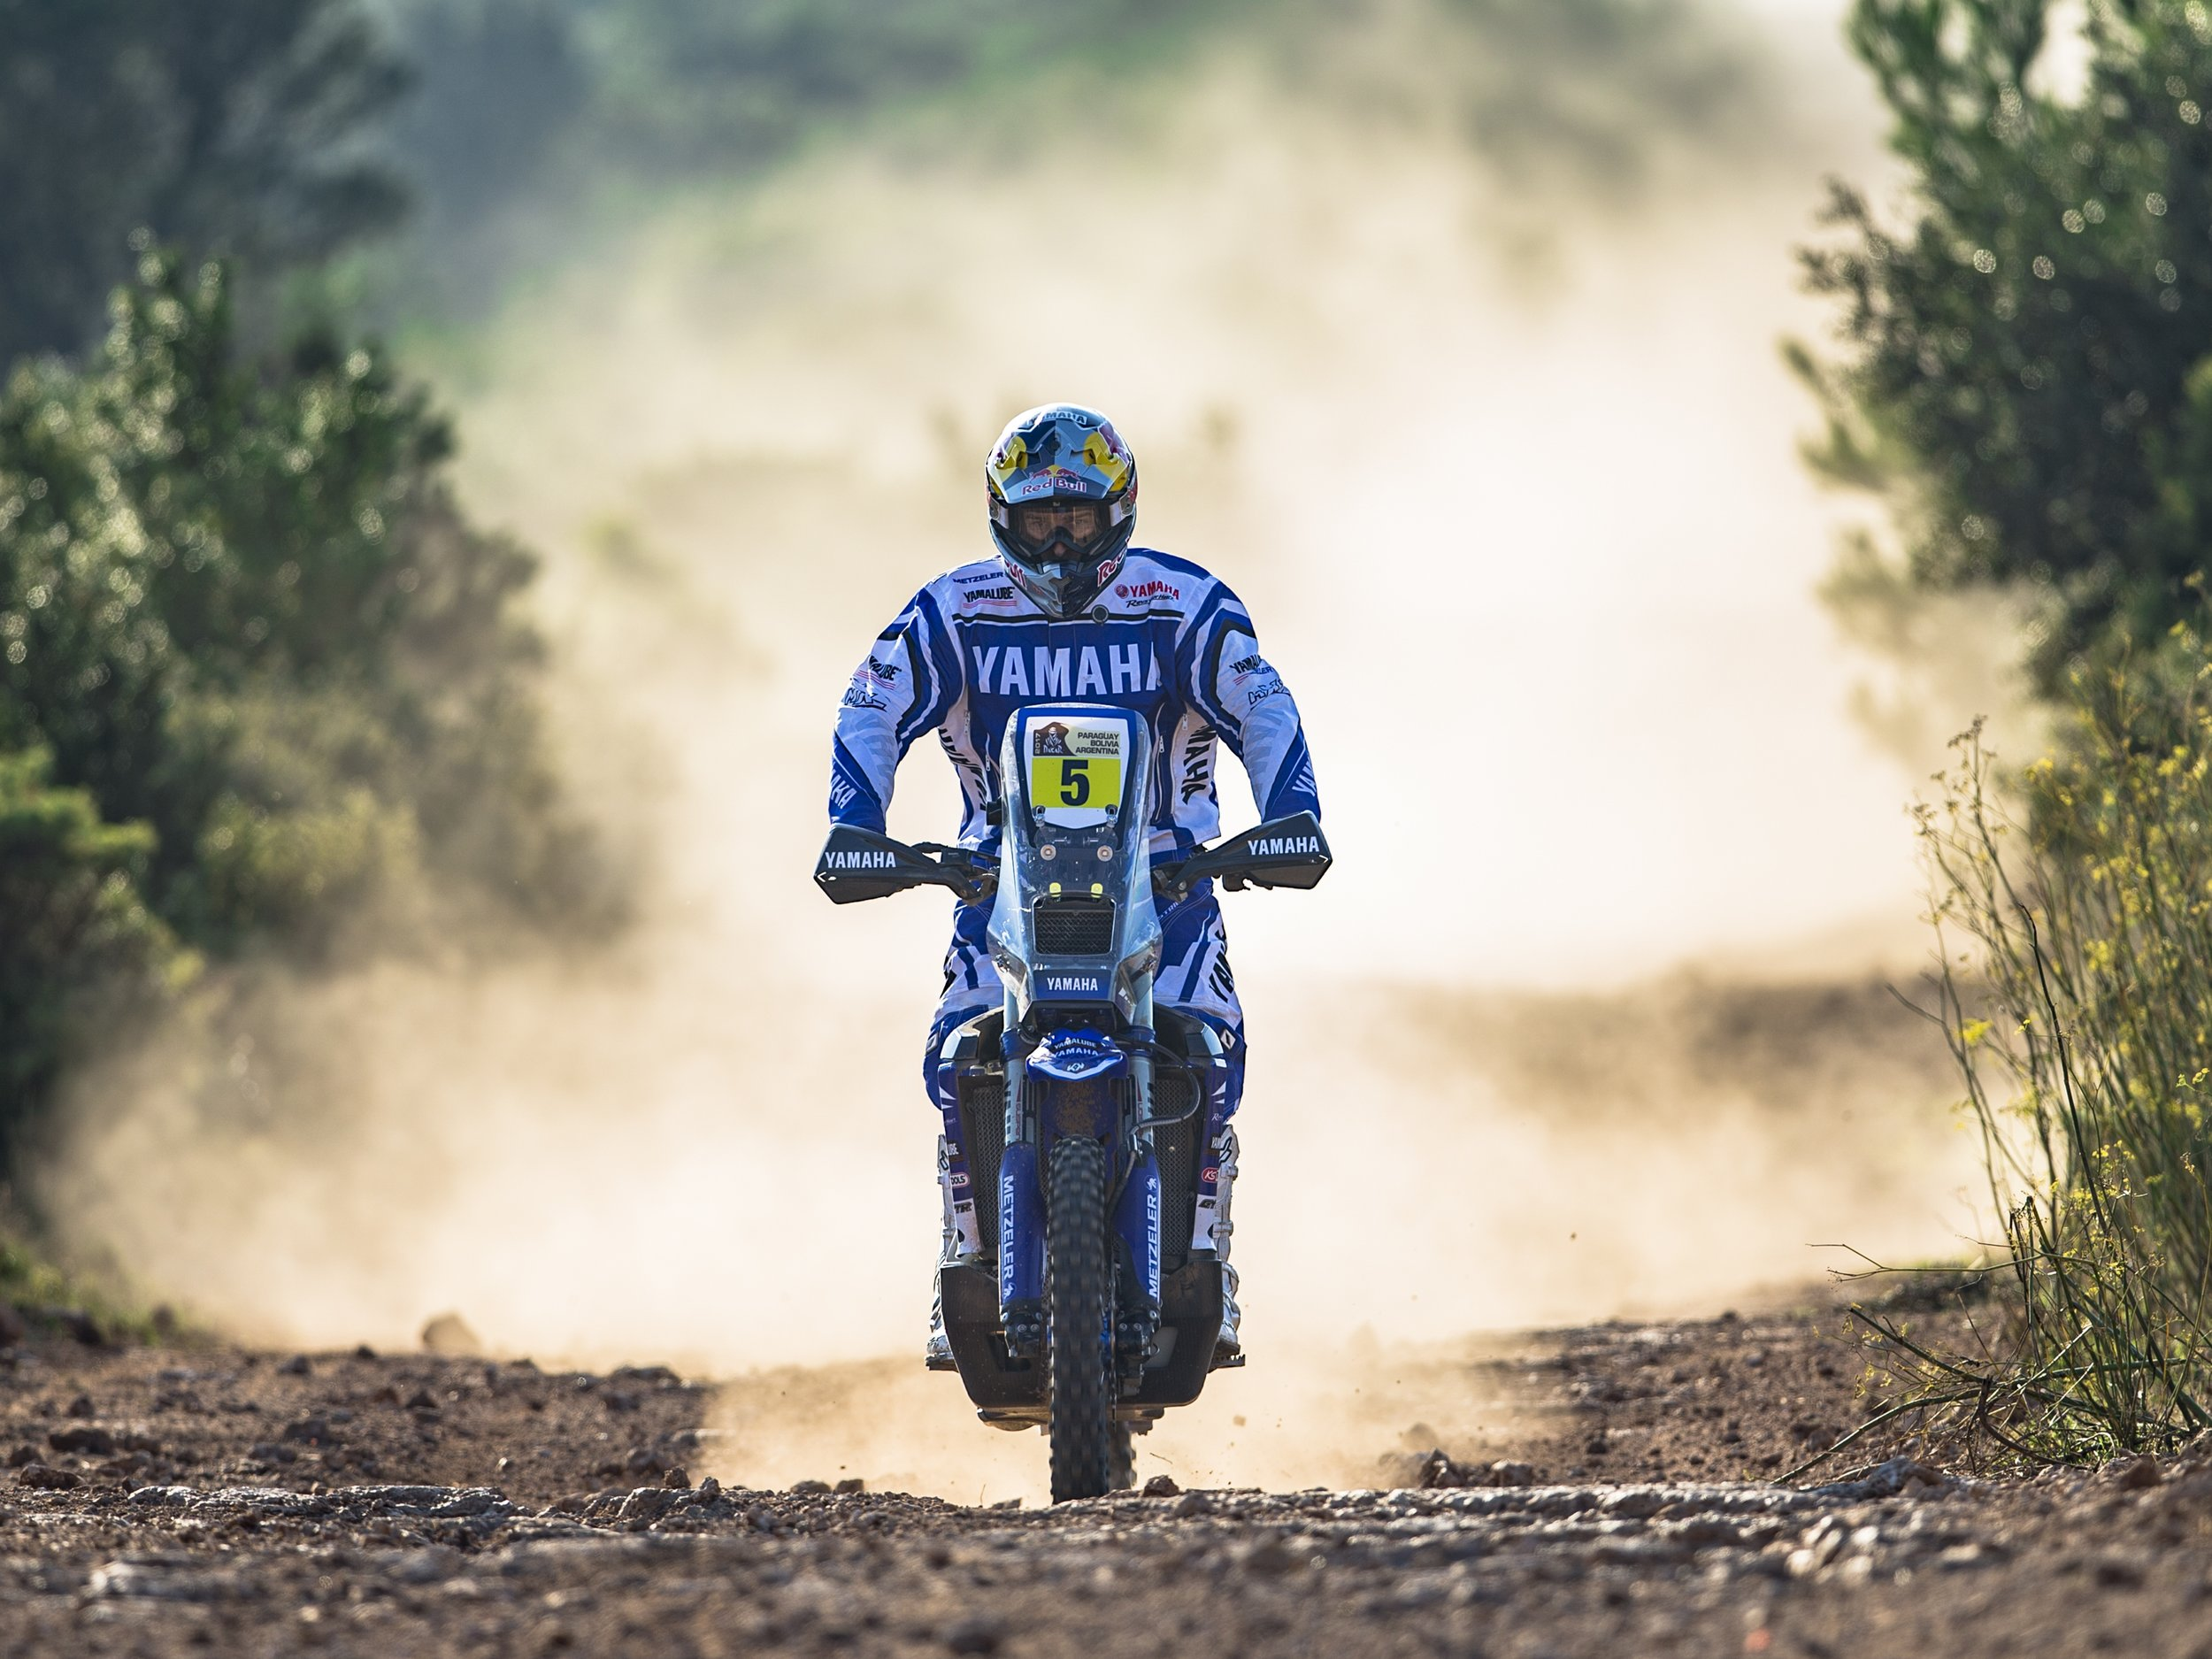 2017_WR450FRALLY_ACT_005.jpg